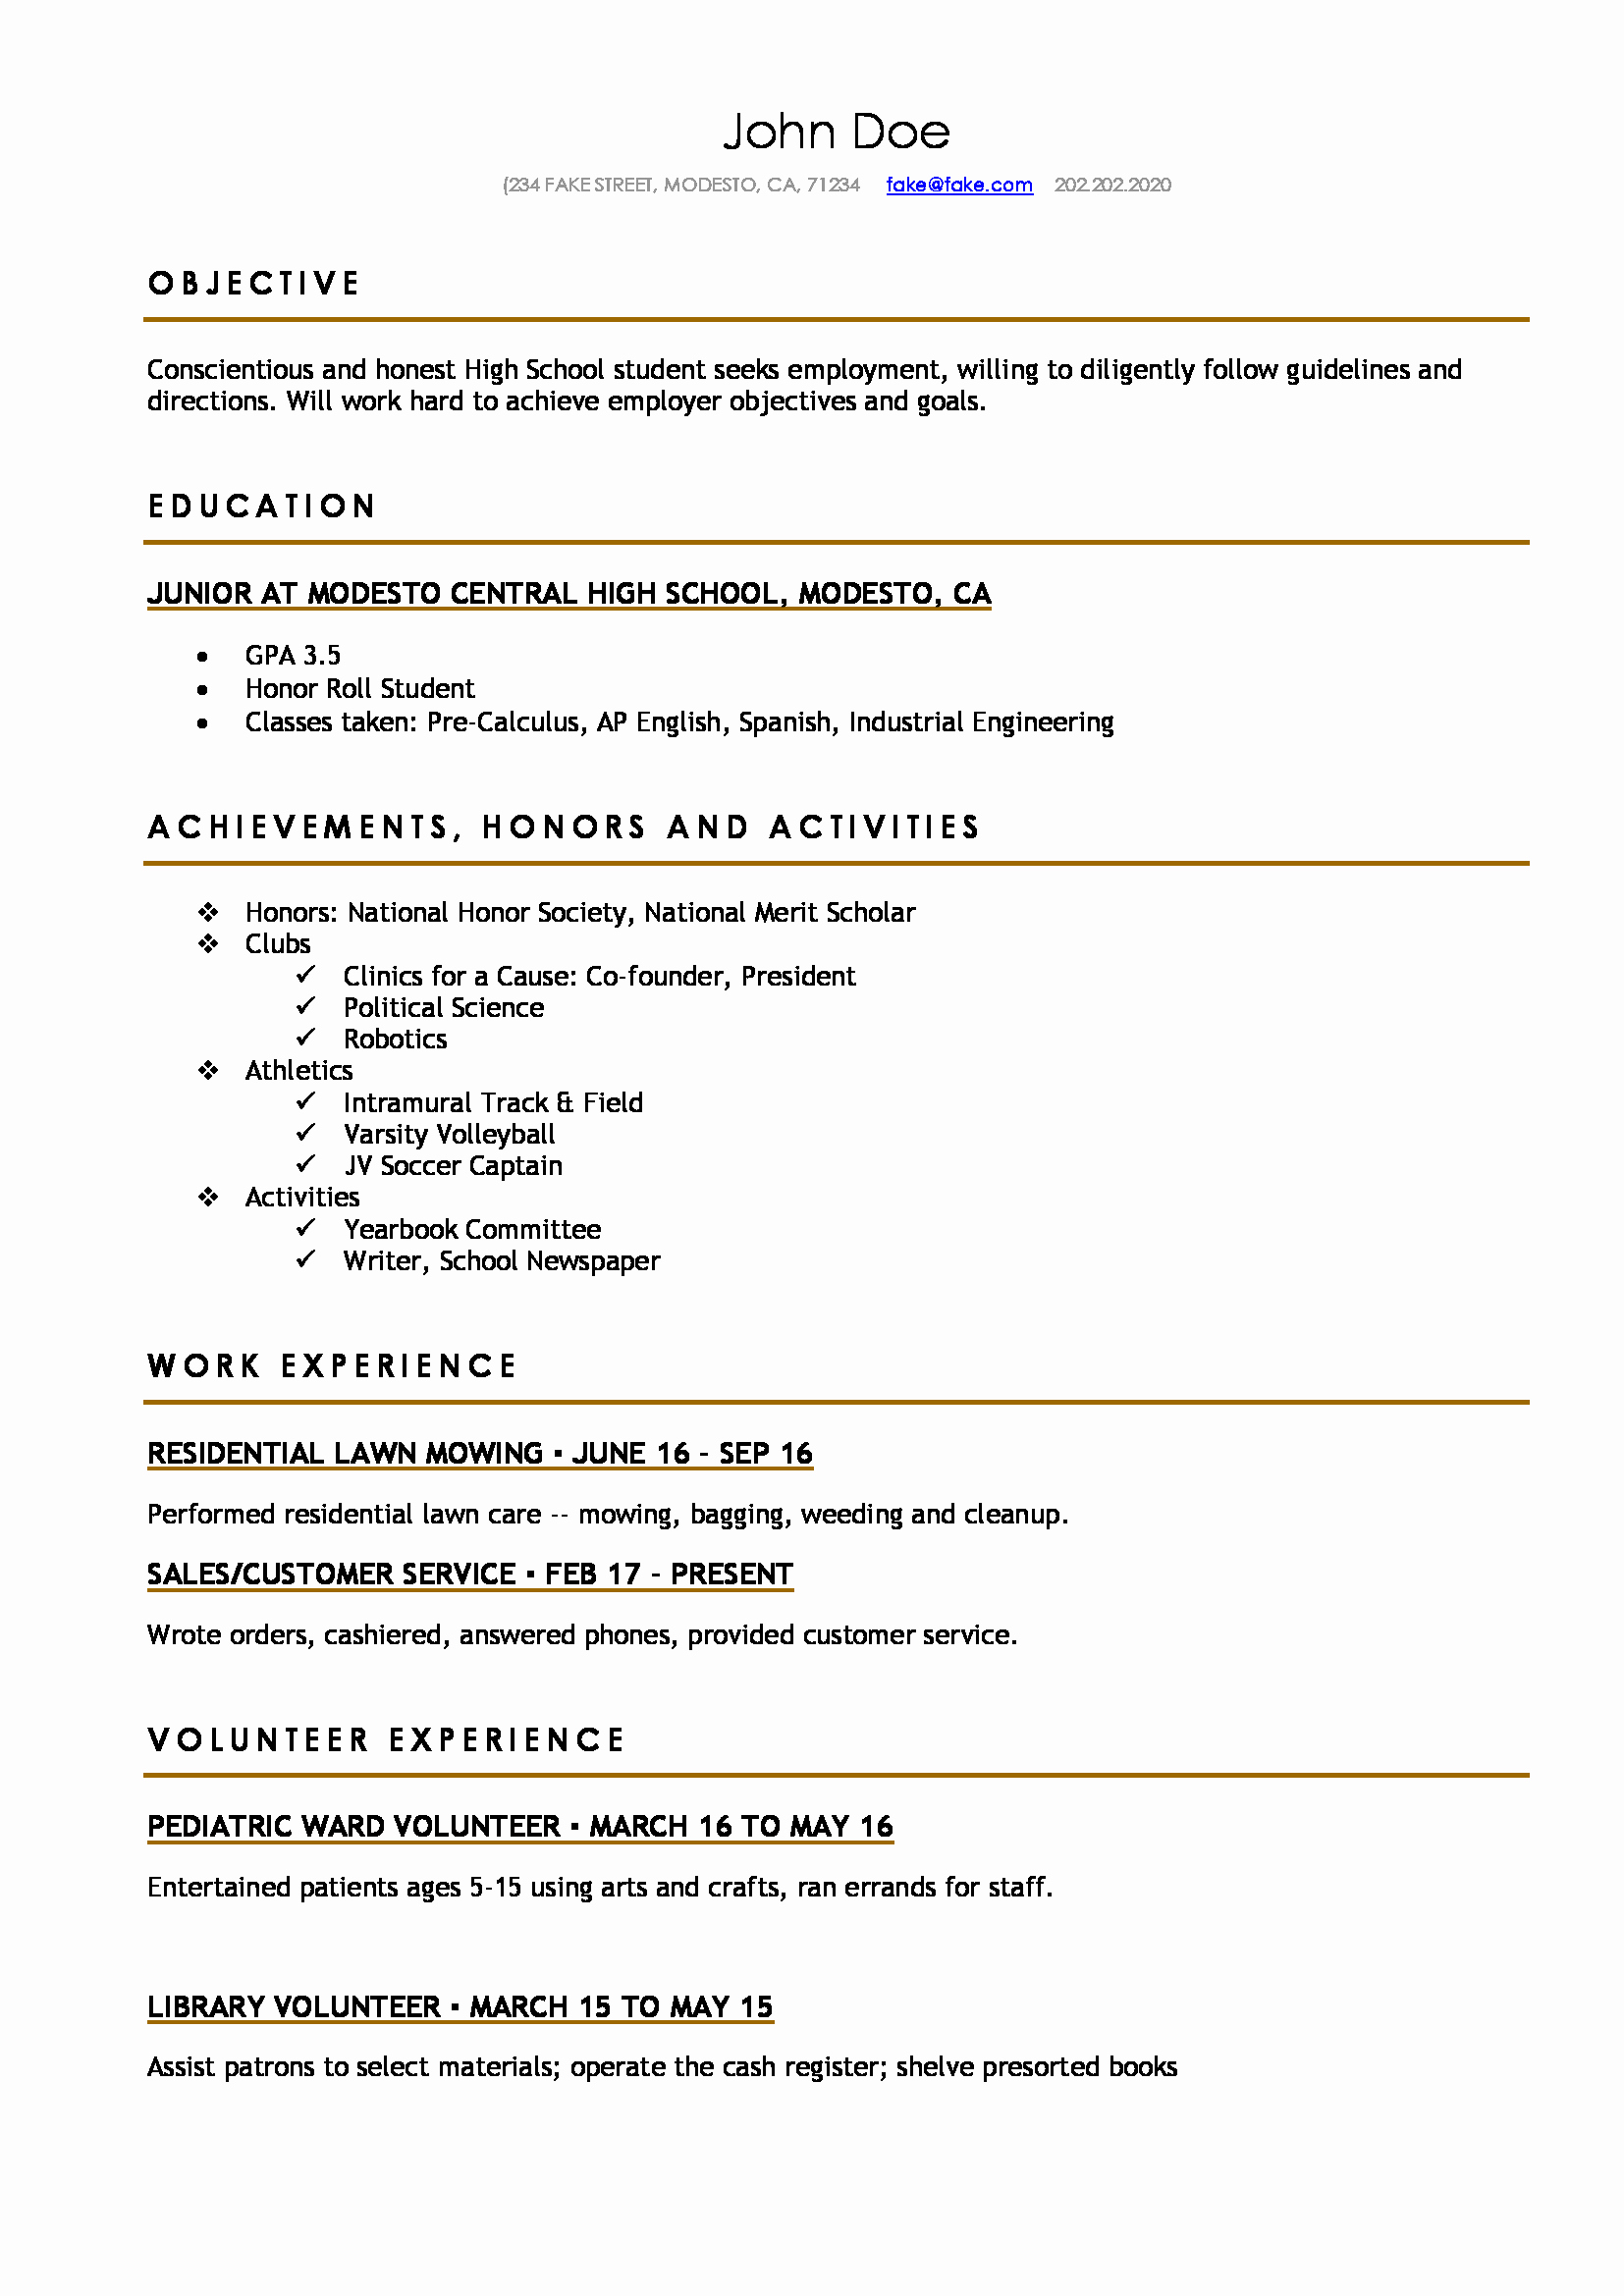 Resume Template College Student Best Of High School Resume Resumes Perfect for High School Students